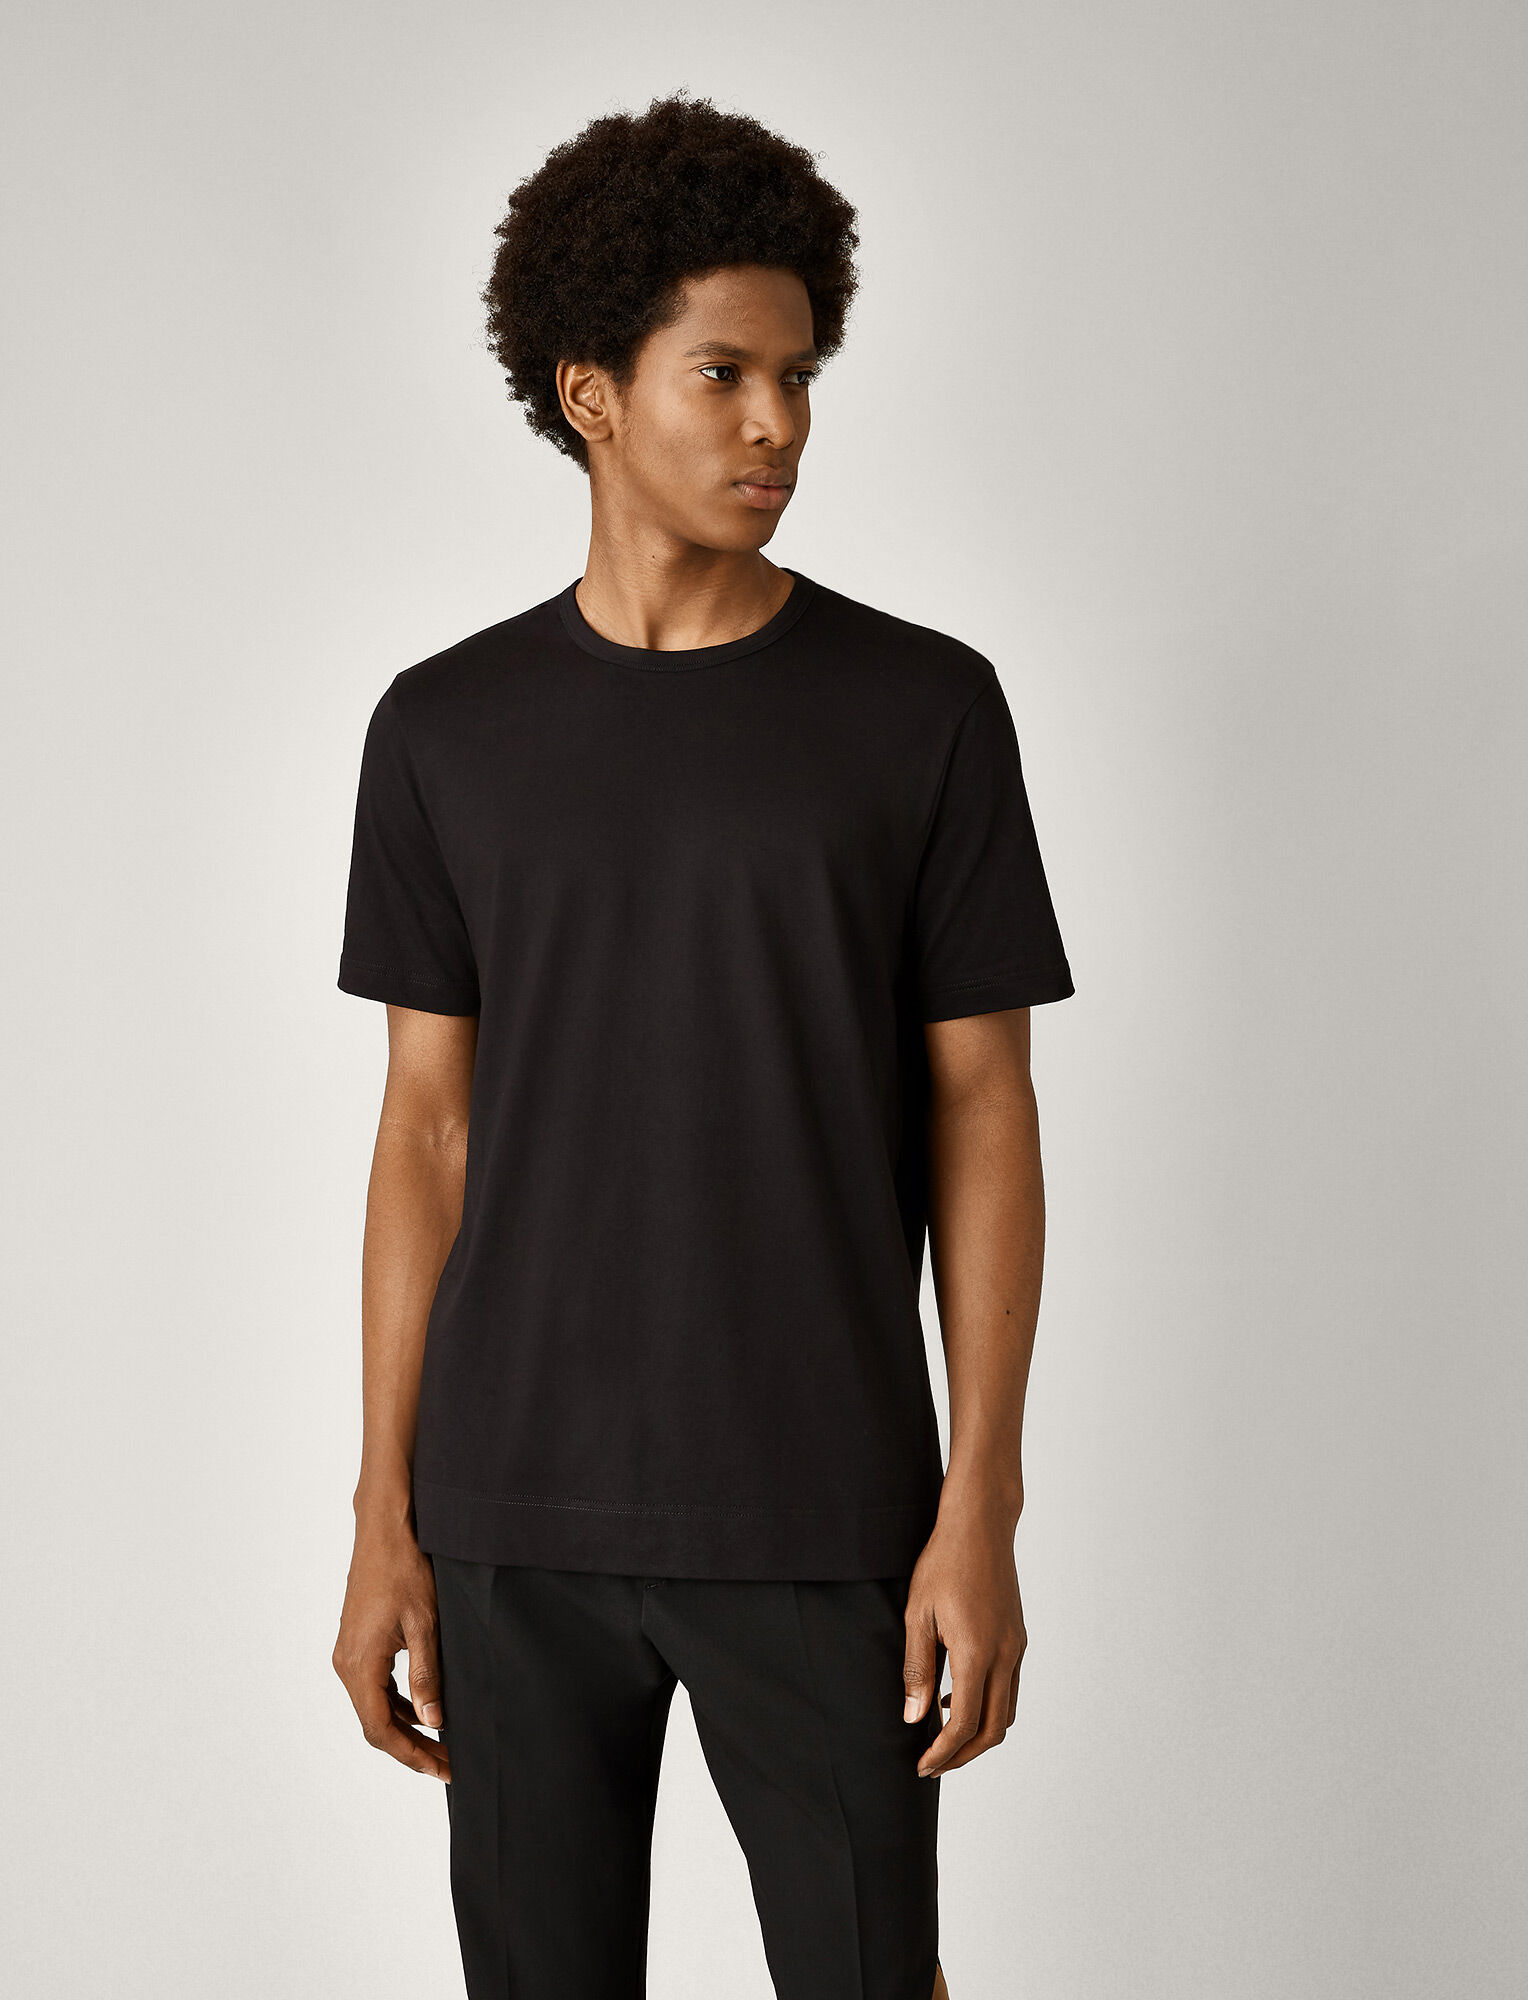 Joseph, Mercerized Jersey Tee, in BLACK